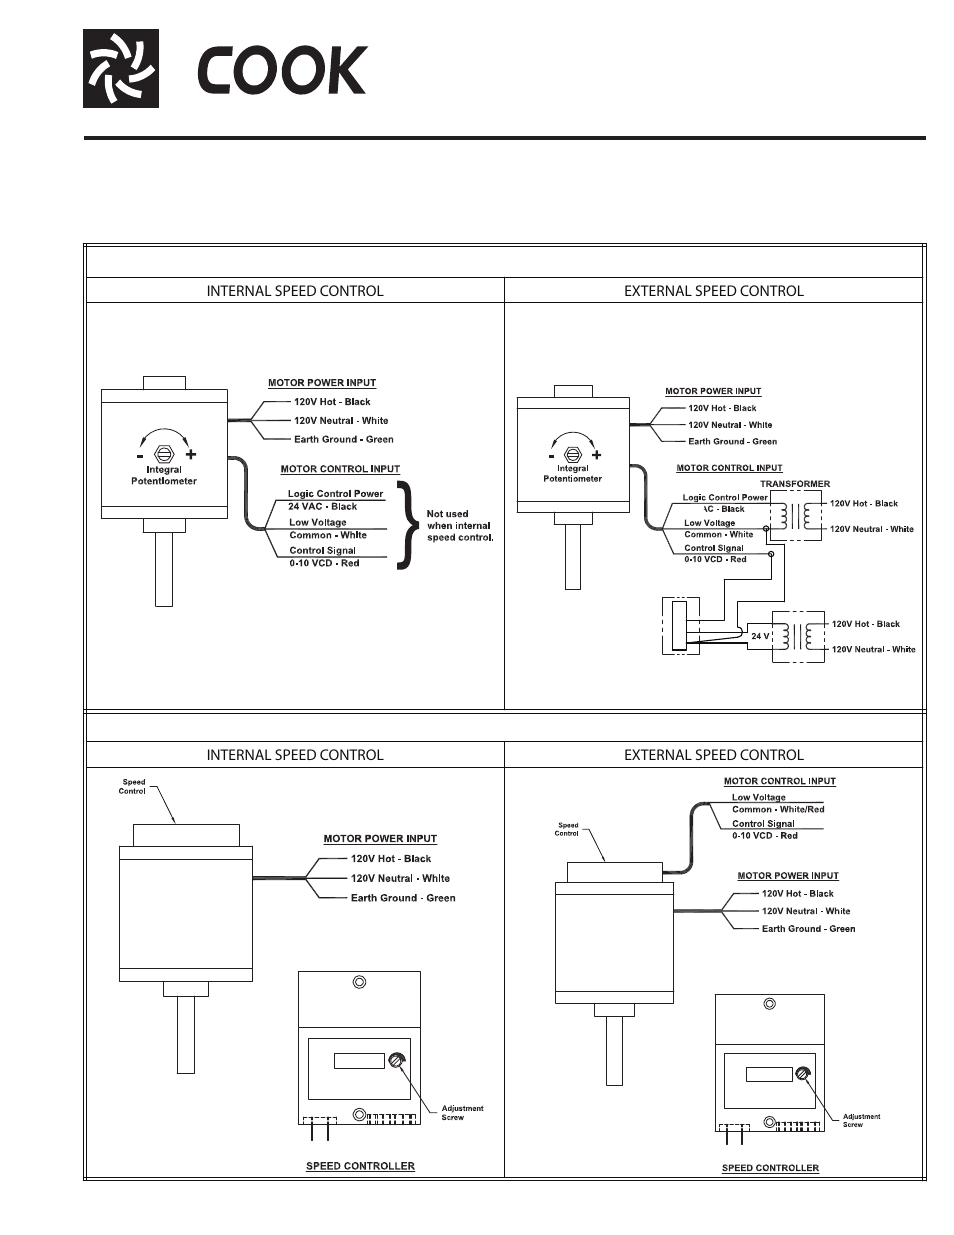 cook ec motor wiring user manual 1 page. Black Bedroom Furniture Sets. Home Design Ideas